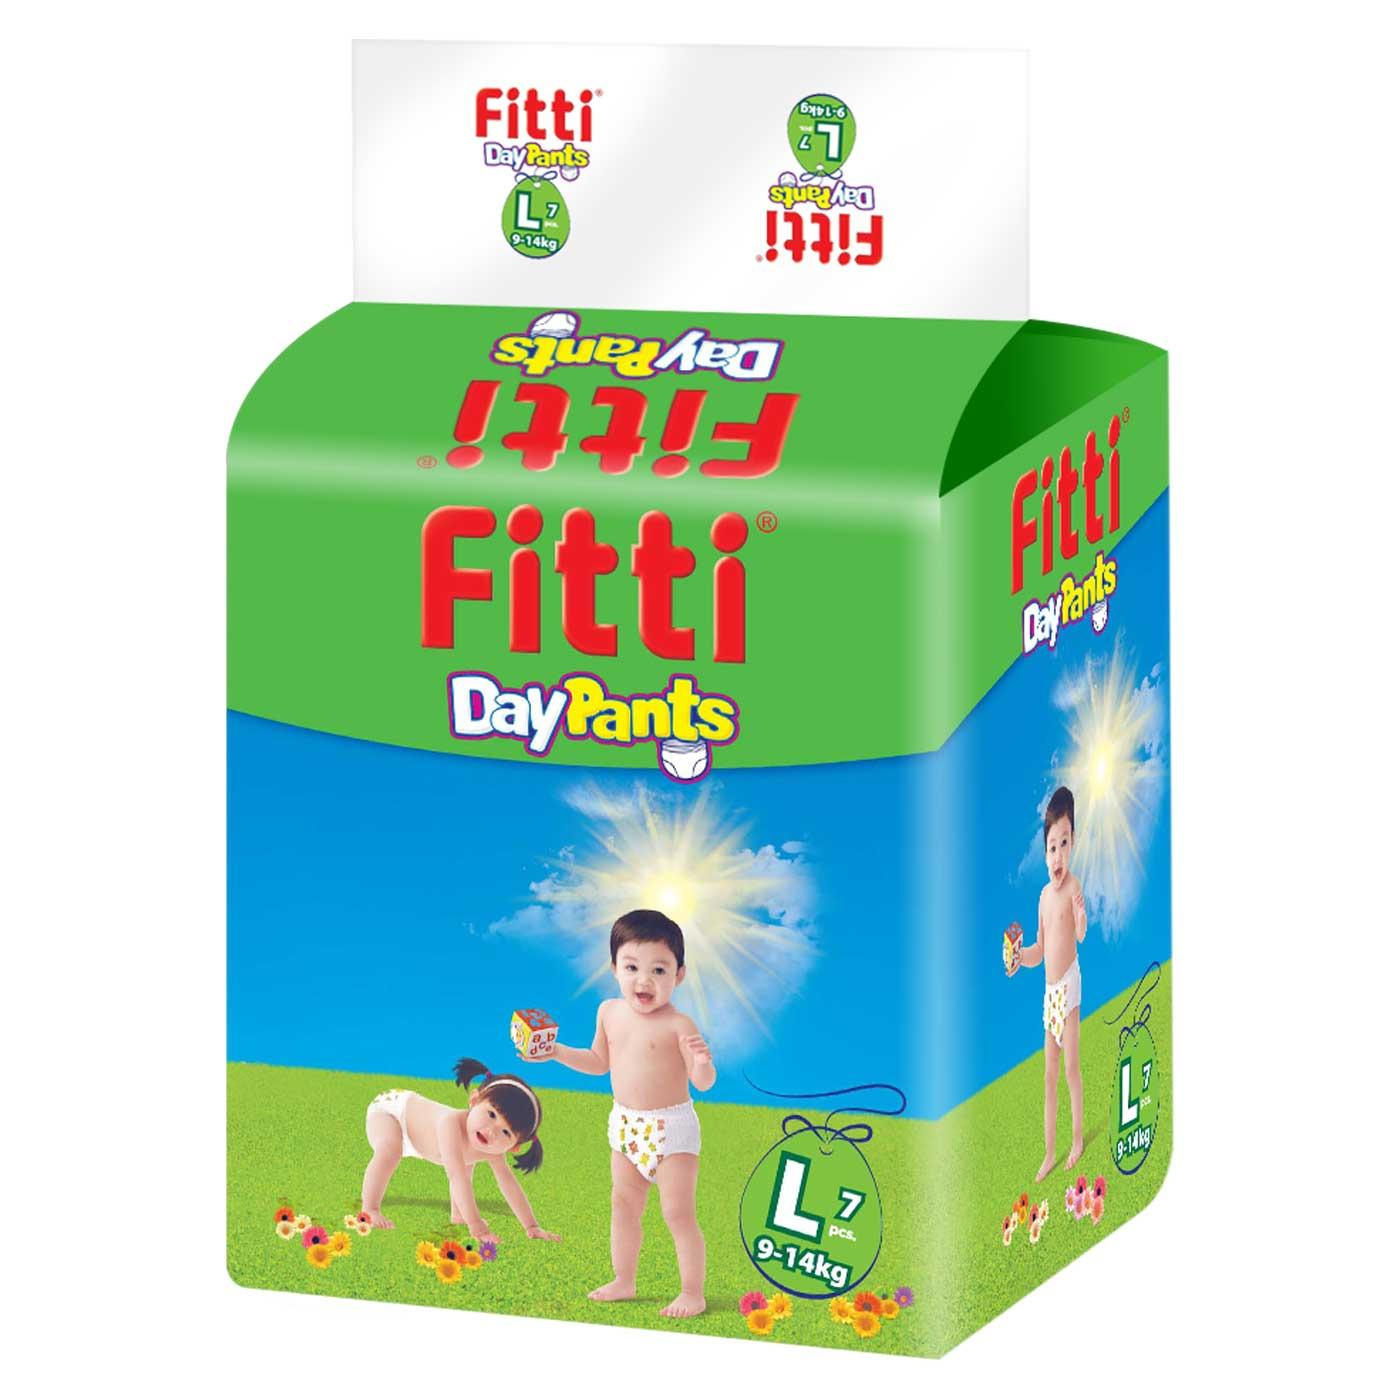 FITTI DAY PANTS L48 ISI 3